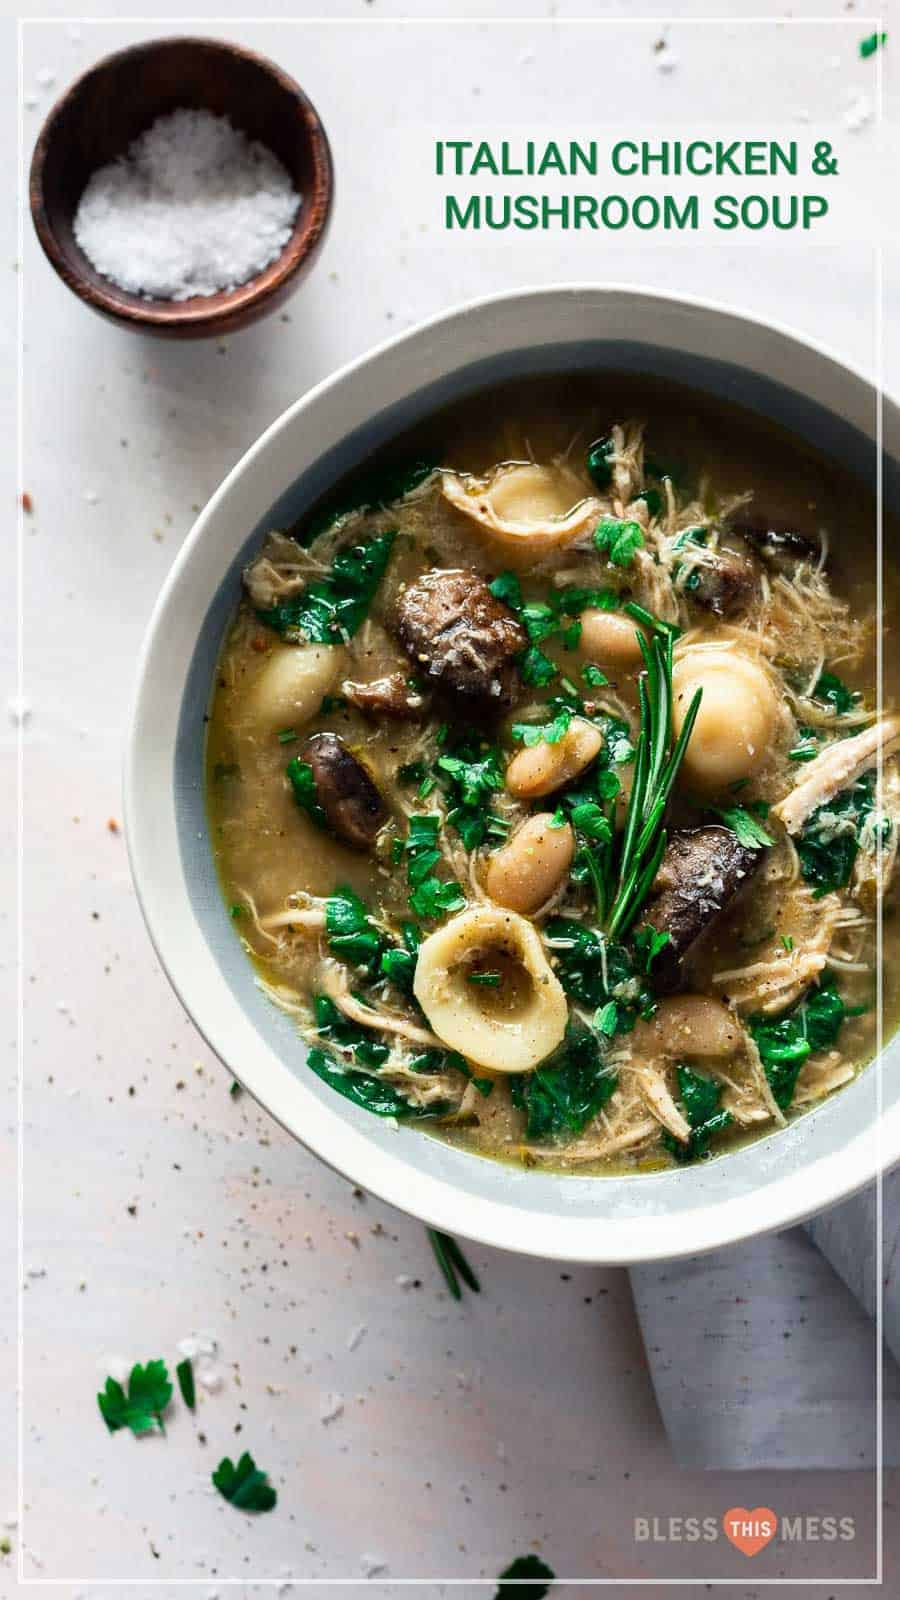 Flavorful and hearty, this Italian chicken and mushroom soup is warming to the soul and is totally easy to make a big batch of on a chilly night! Packed with flavor and delicious ingredients, you'll love this soup for fall and winter nights when all you want is something warm and comforting. #italiansoup #soup #chickensoup #mushroomsoup #souprecipes #italianrecipes